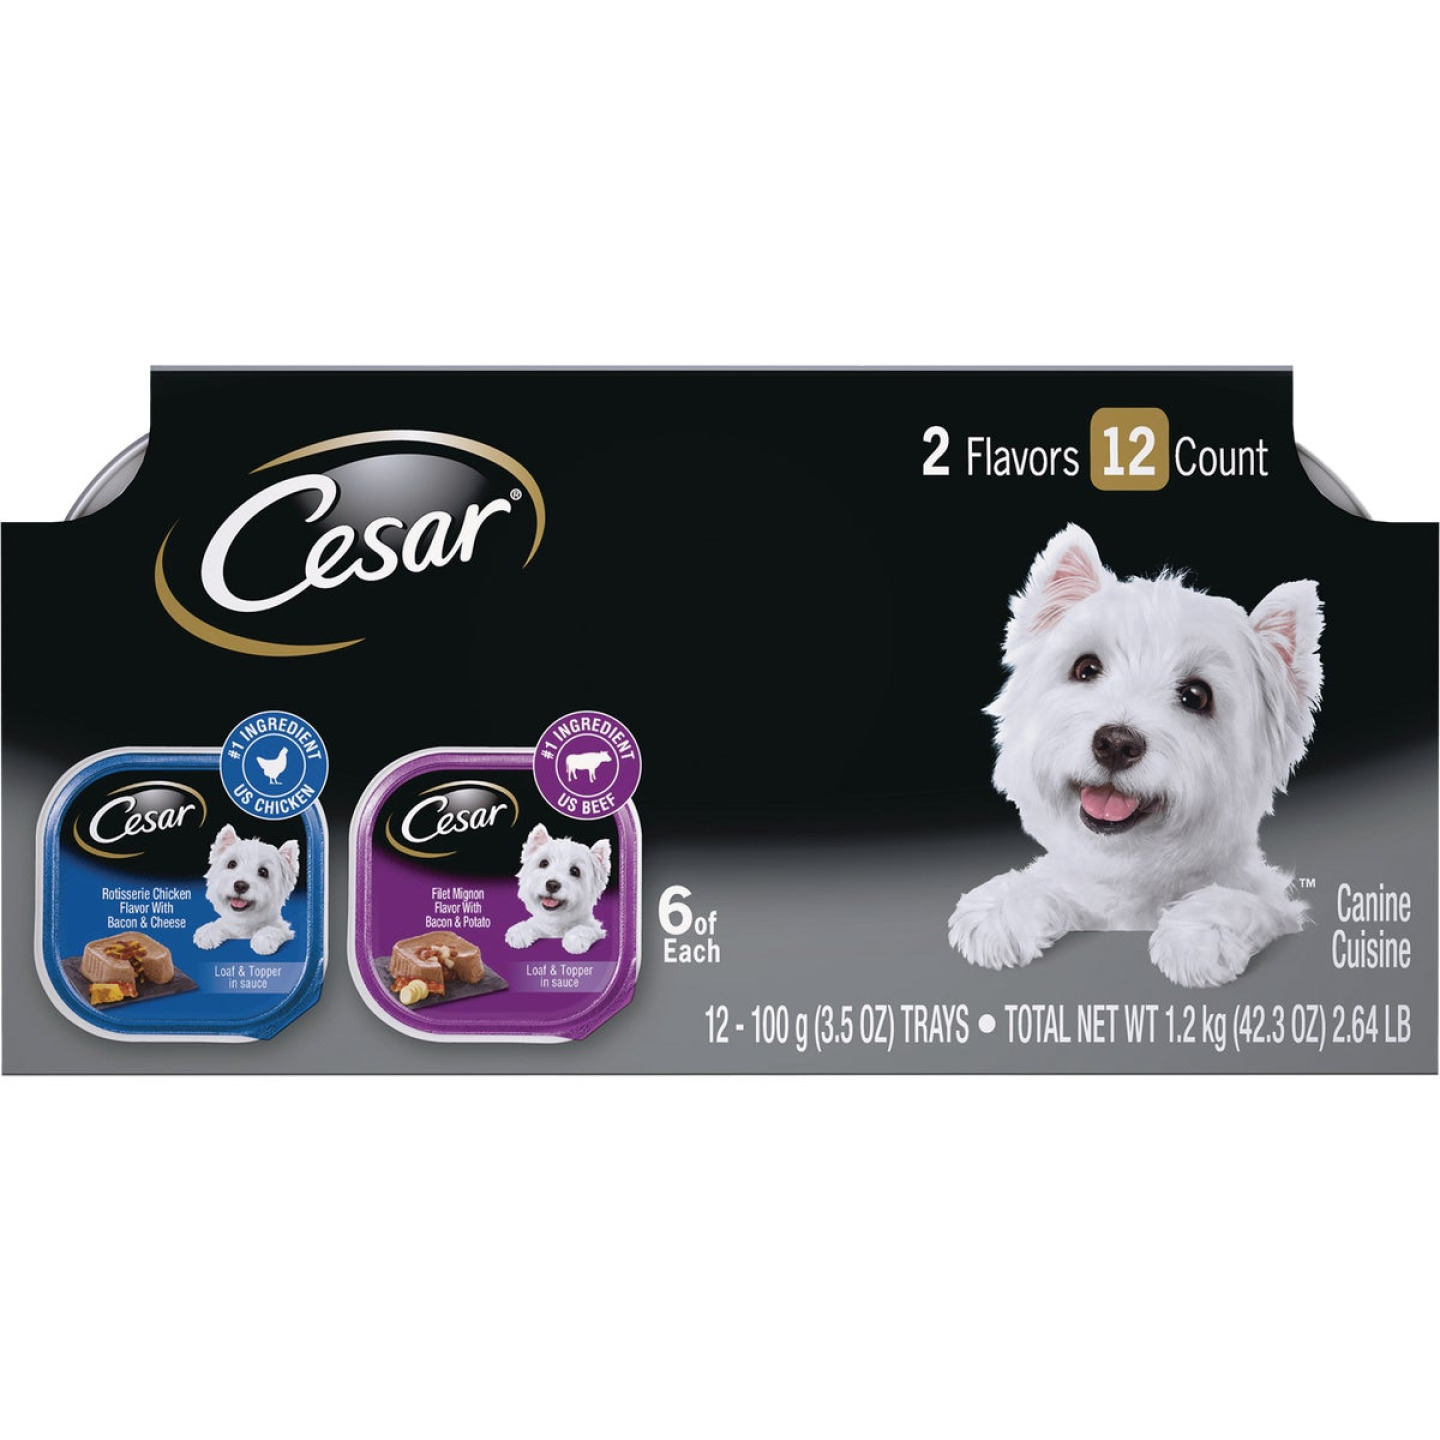 Cesar Loaf & Topper Rotisserie Chicken with Bacon & Cheese/Filet Mignon with Bacon & Potato Variety Adult Wet Dog Food (12-Pack) Image 1